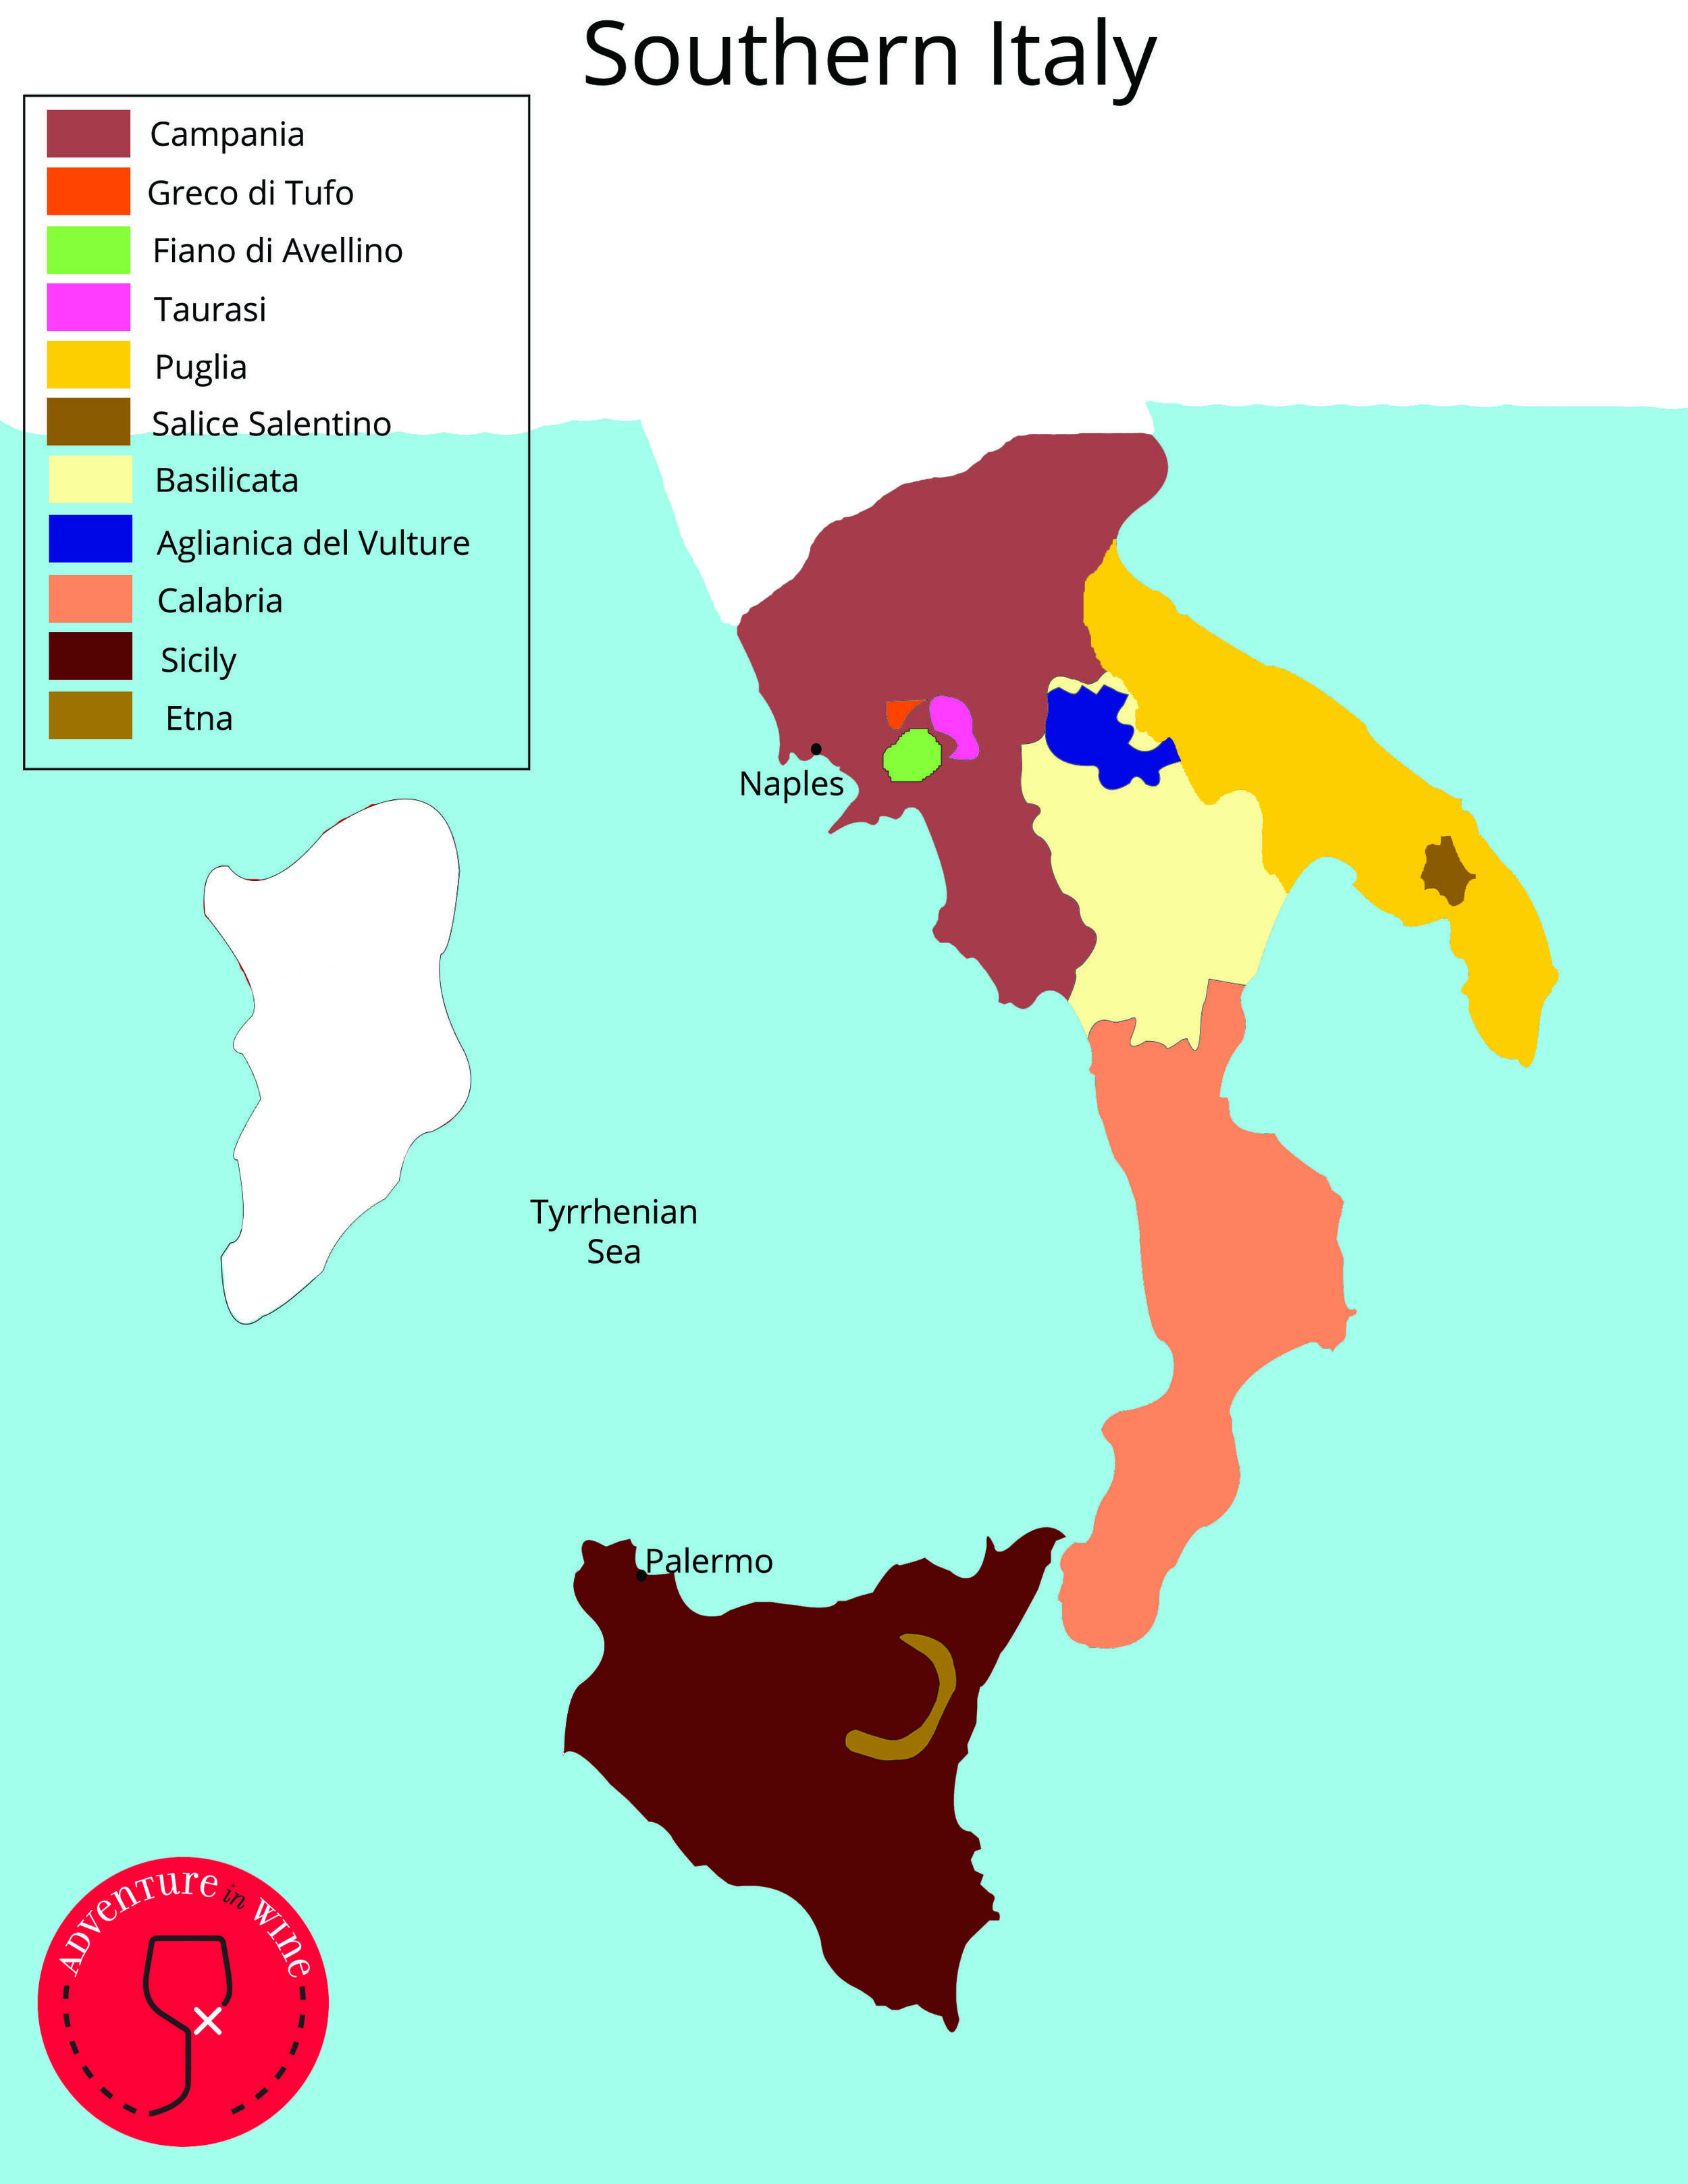 Italy - Southern Italy colour.jpg